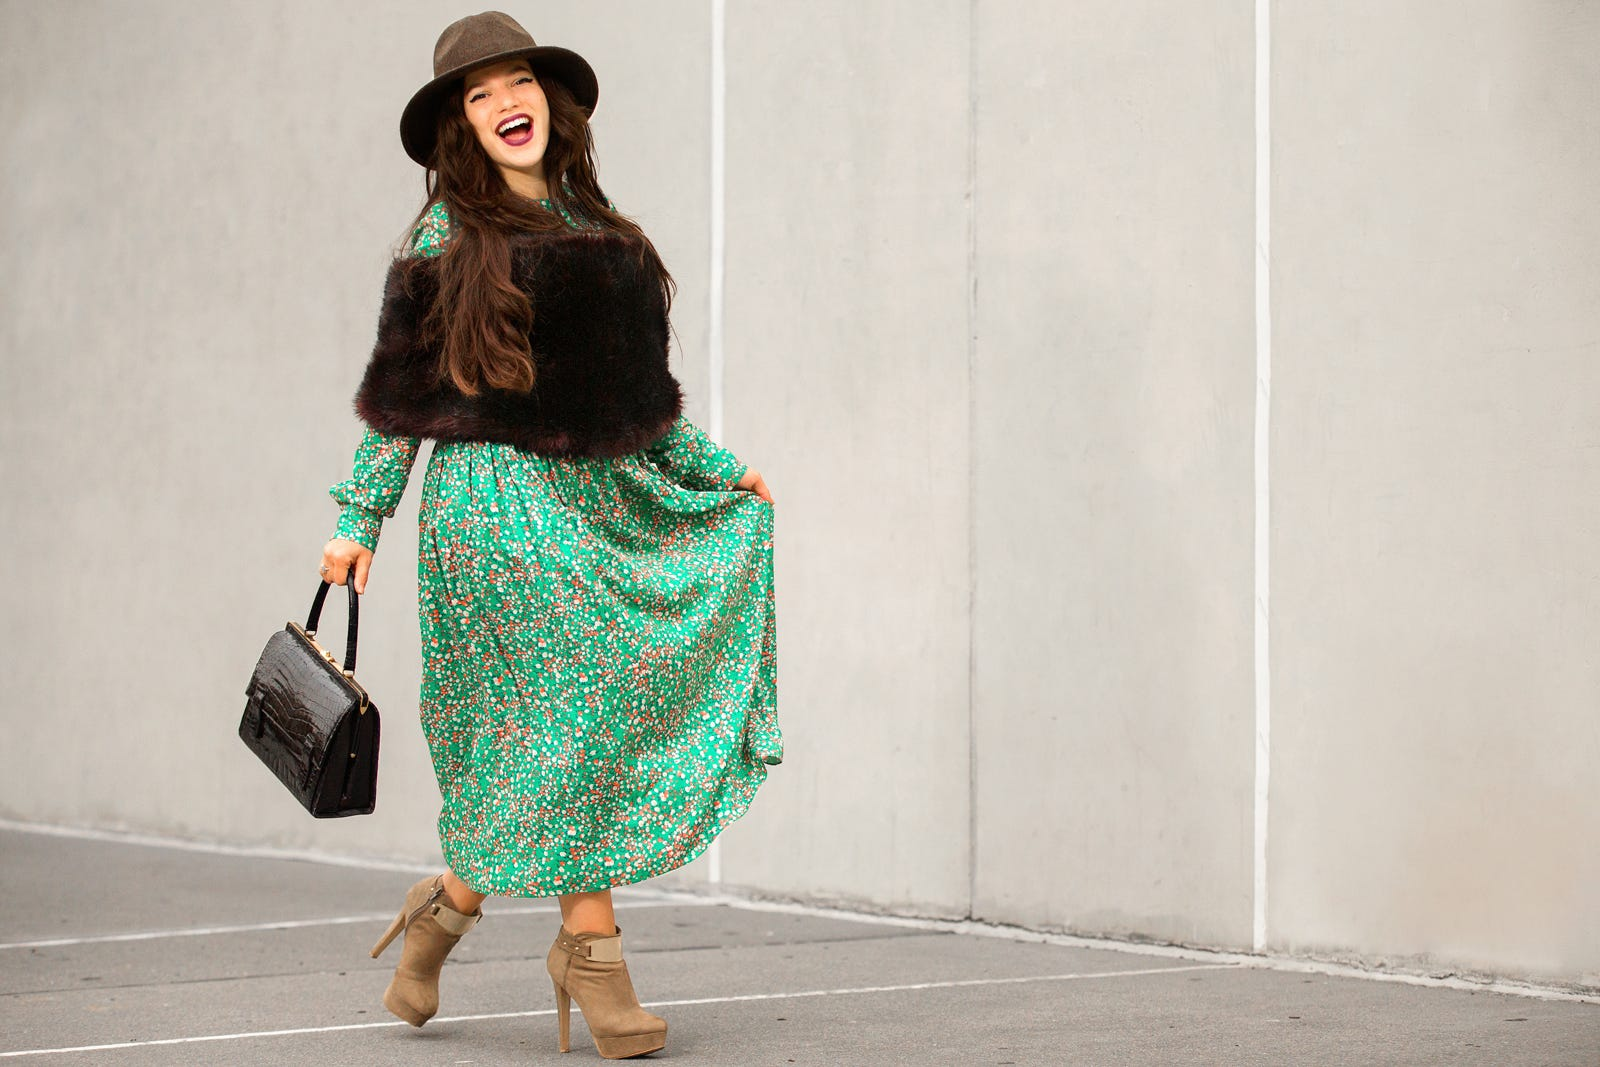 Modest Fashion   Stylish  Covered Up Outfit Ideas